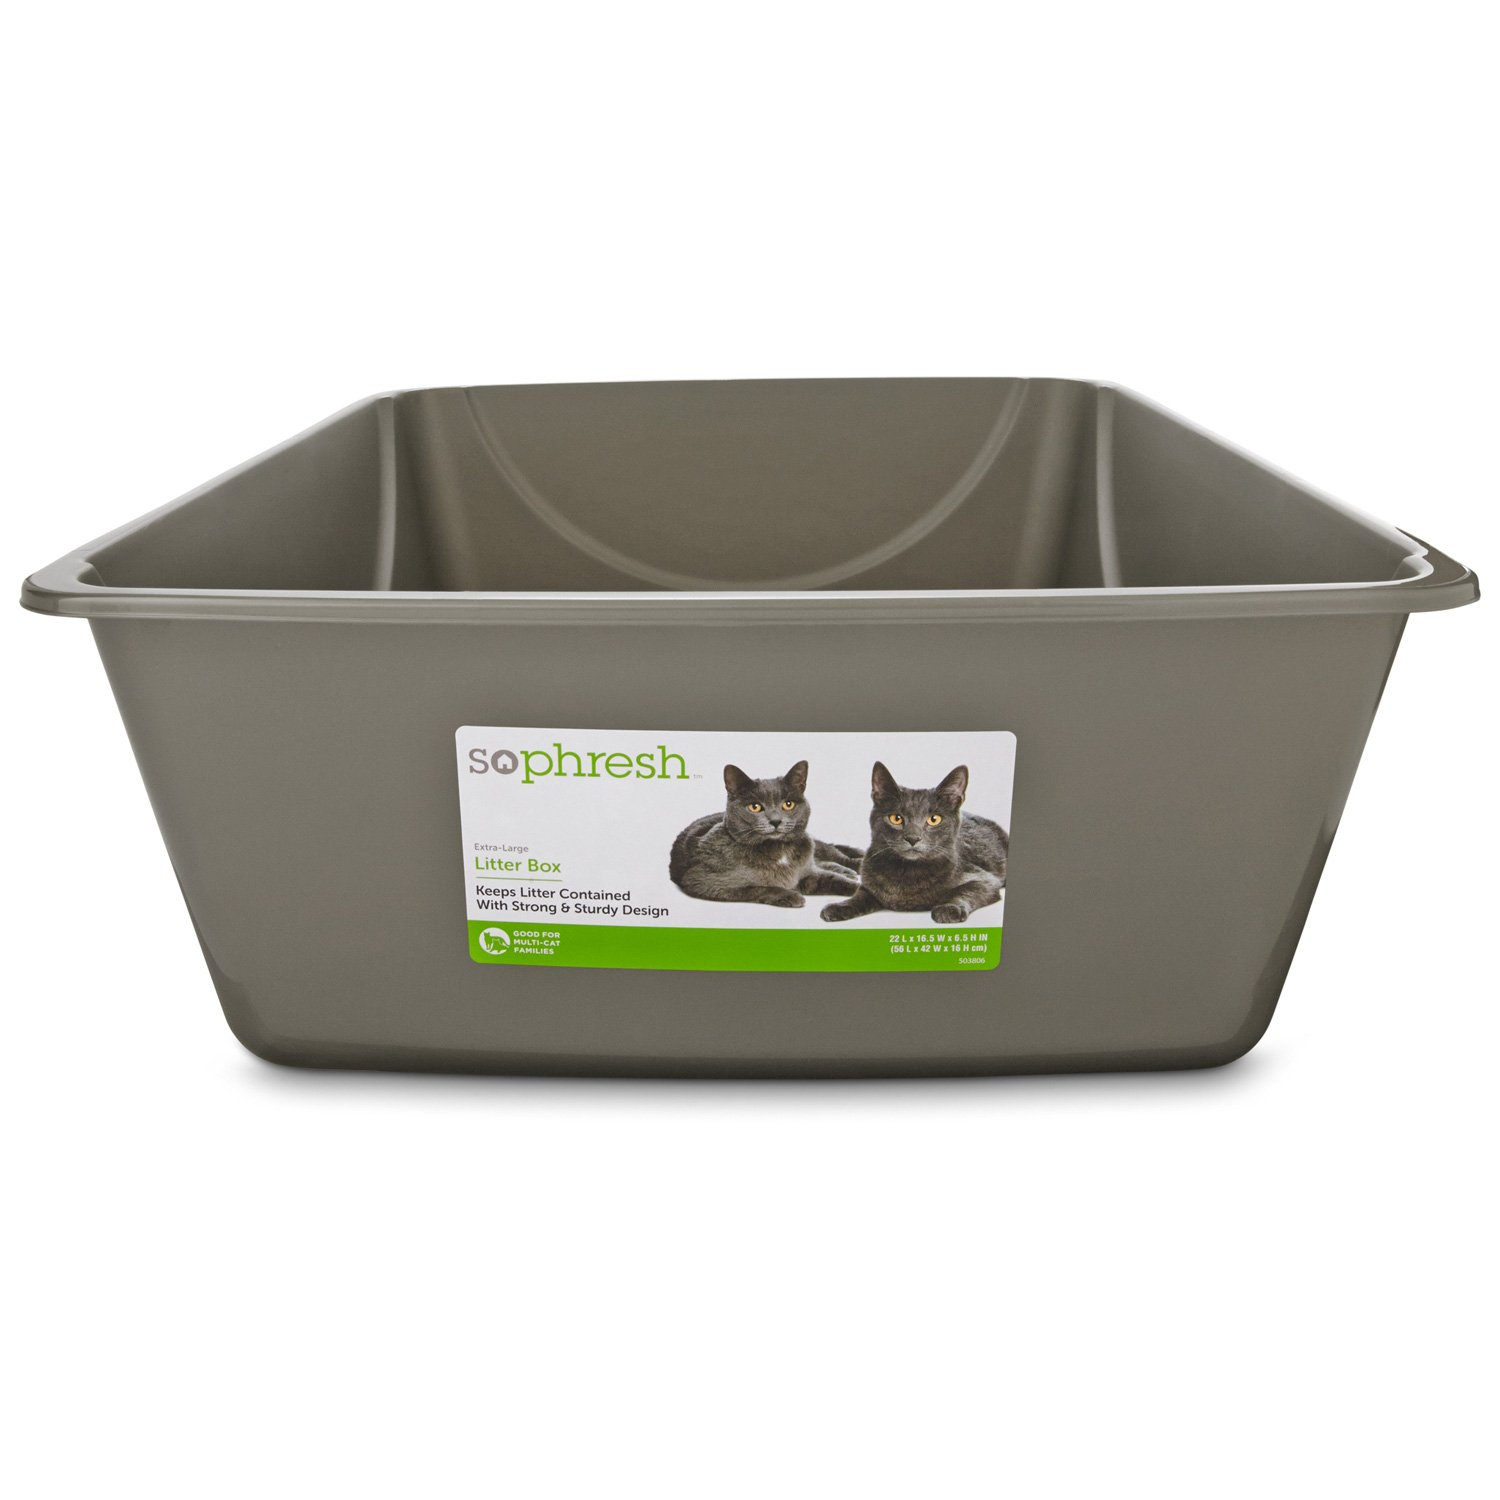 These litter boxes will help remove your cat's waste after each usage, providing them with clean litter as well as controlling the odor from the box. Keep your pet happy and healthy with one the litter boxes and enclosures from Wayfair.